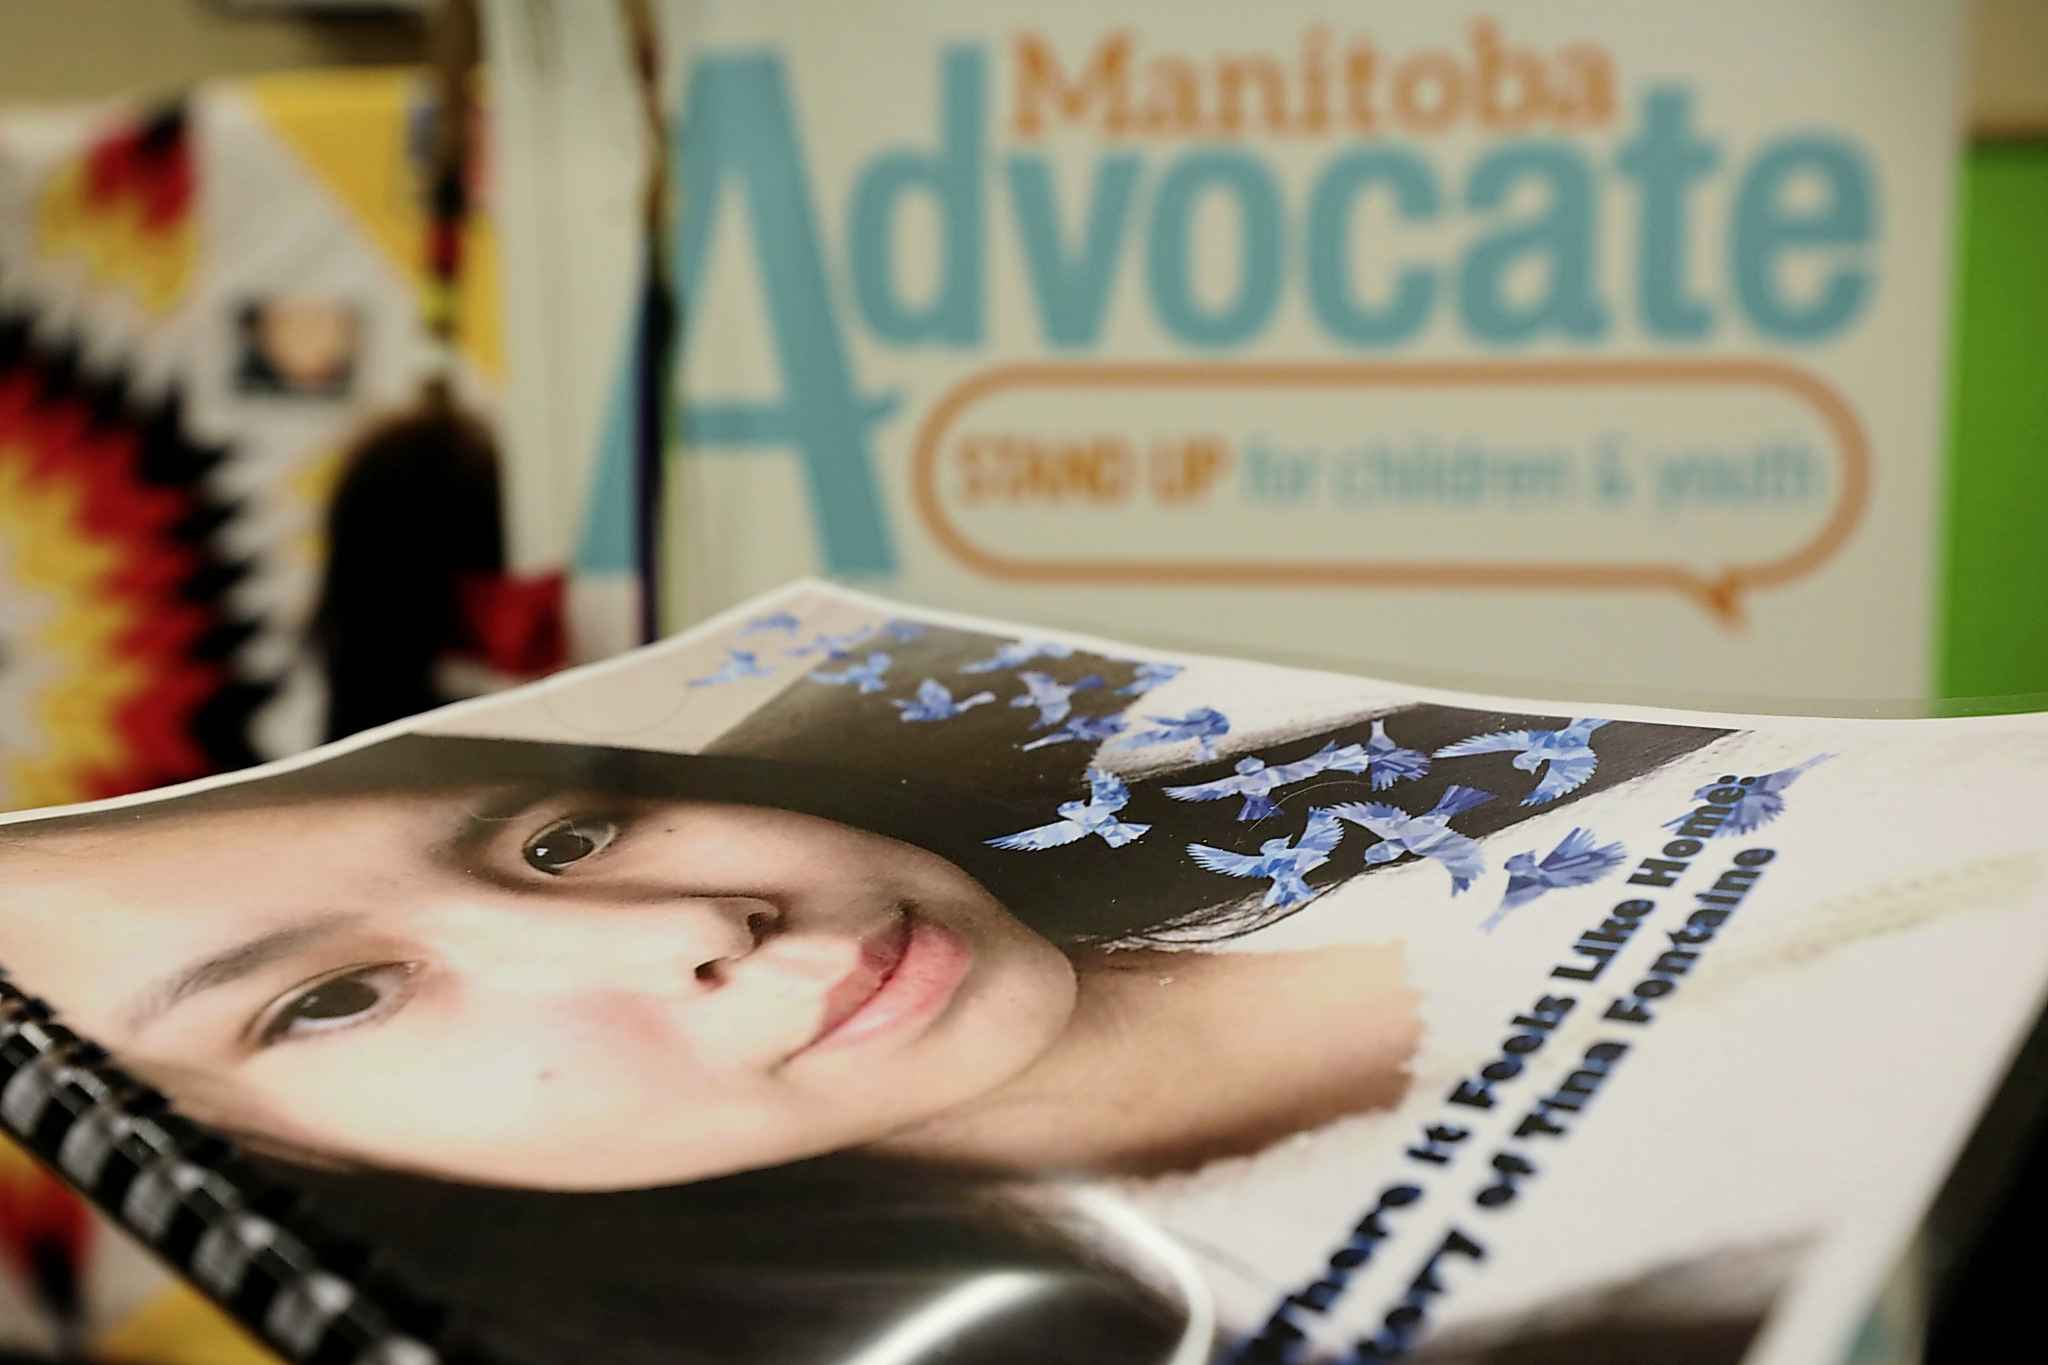 Manitoba Advocate for Children and Youth special report for the investigation into the death of Tina Fontaine.